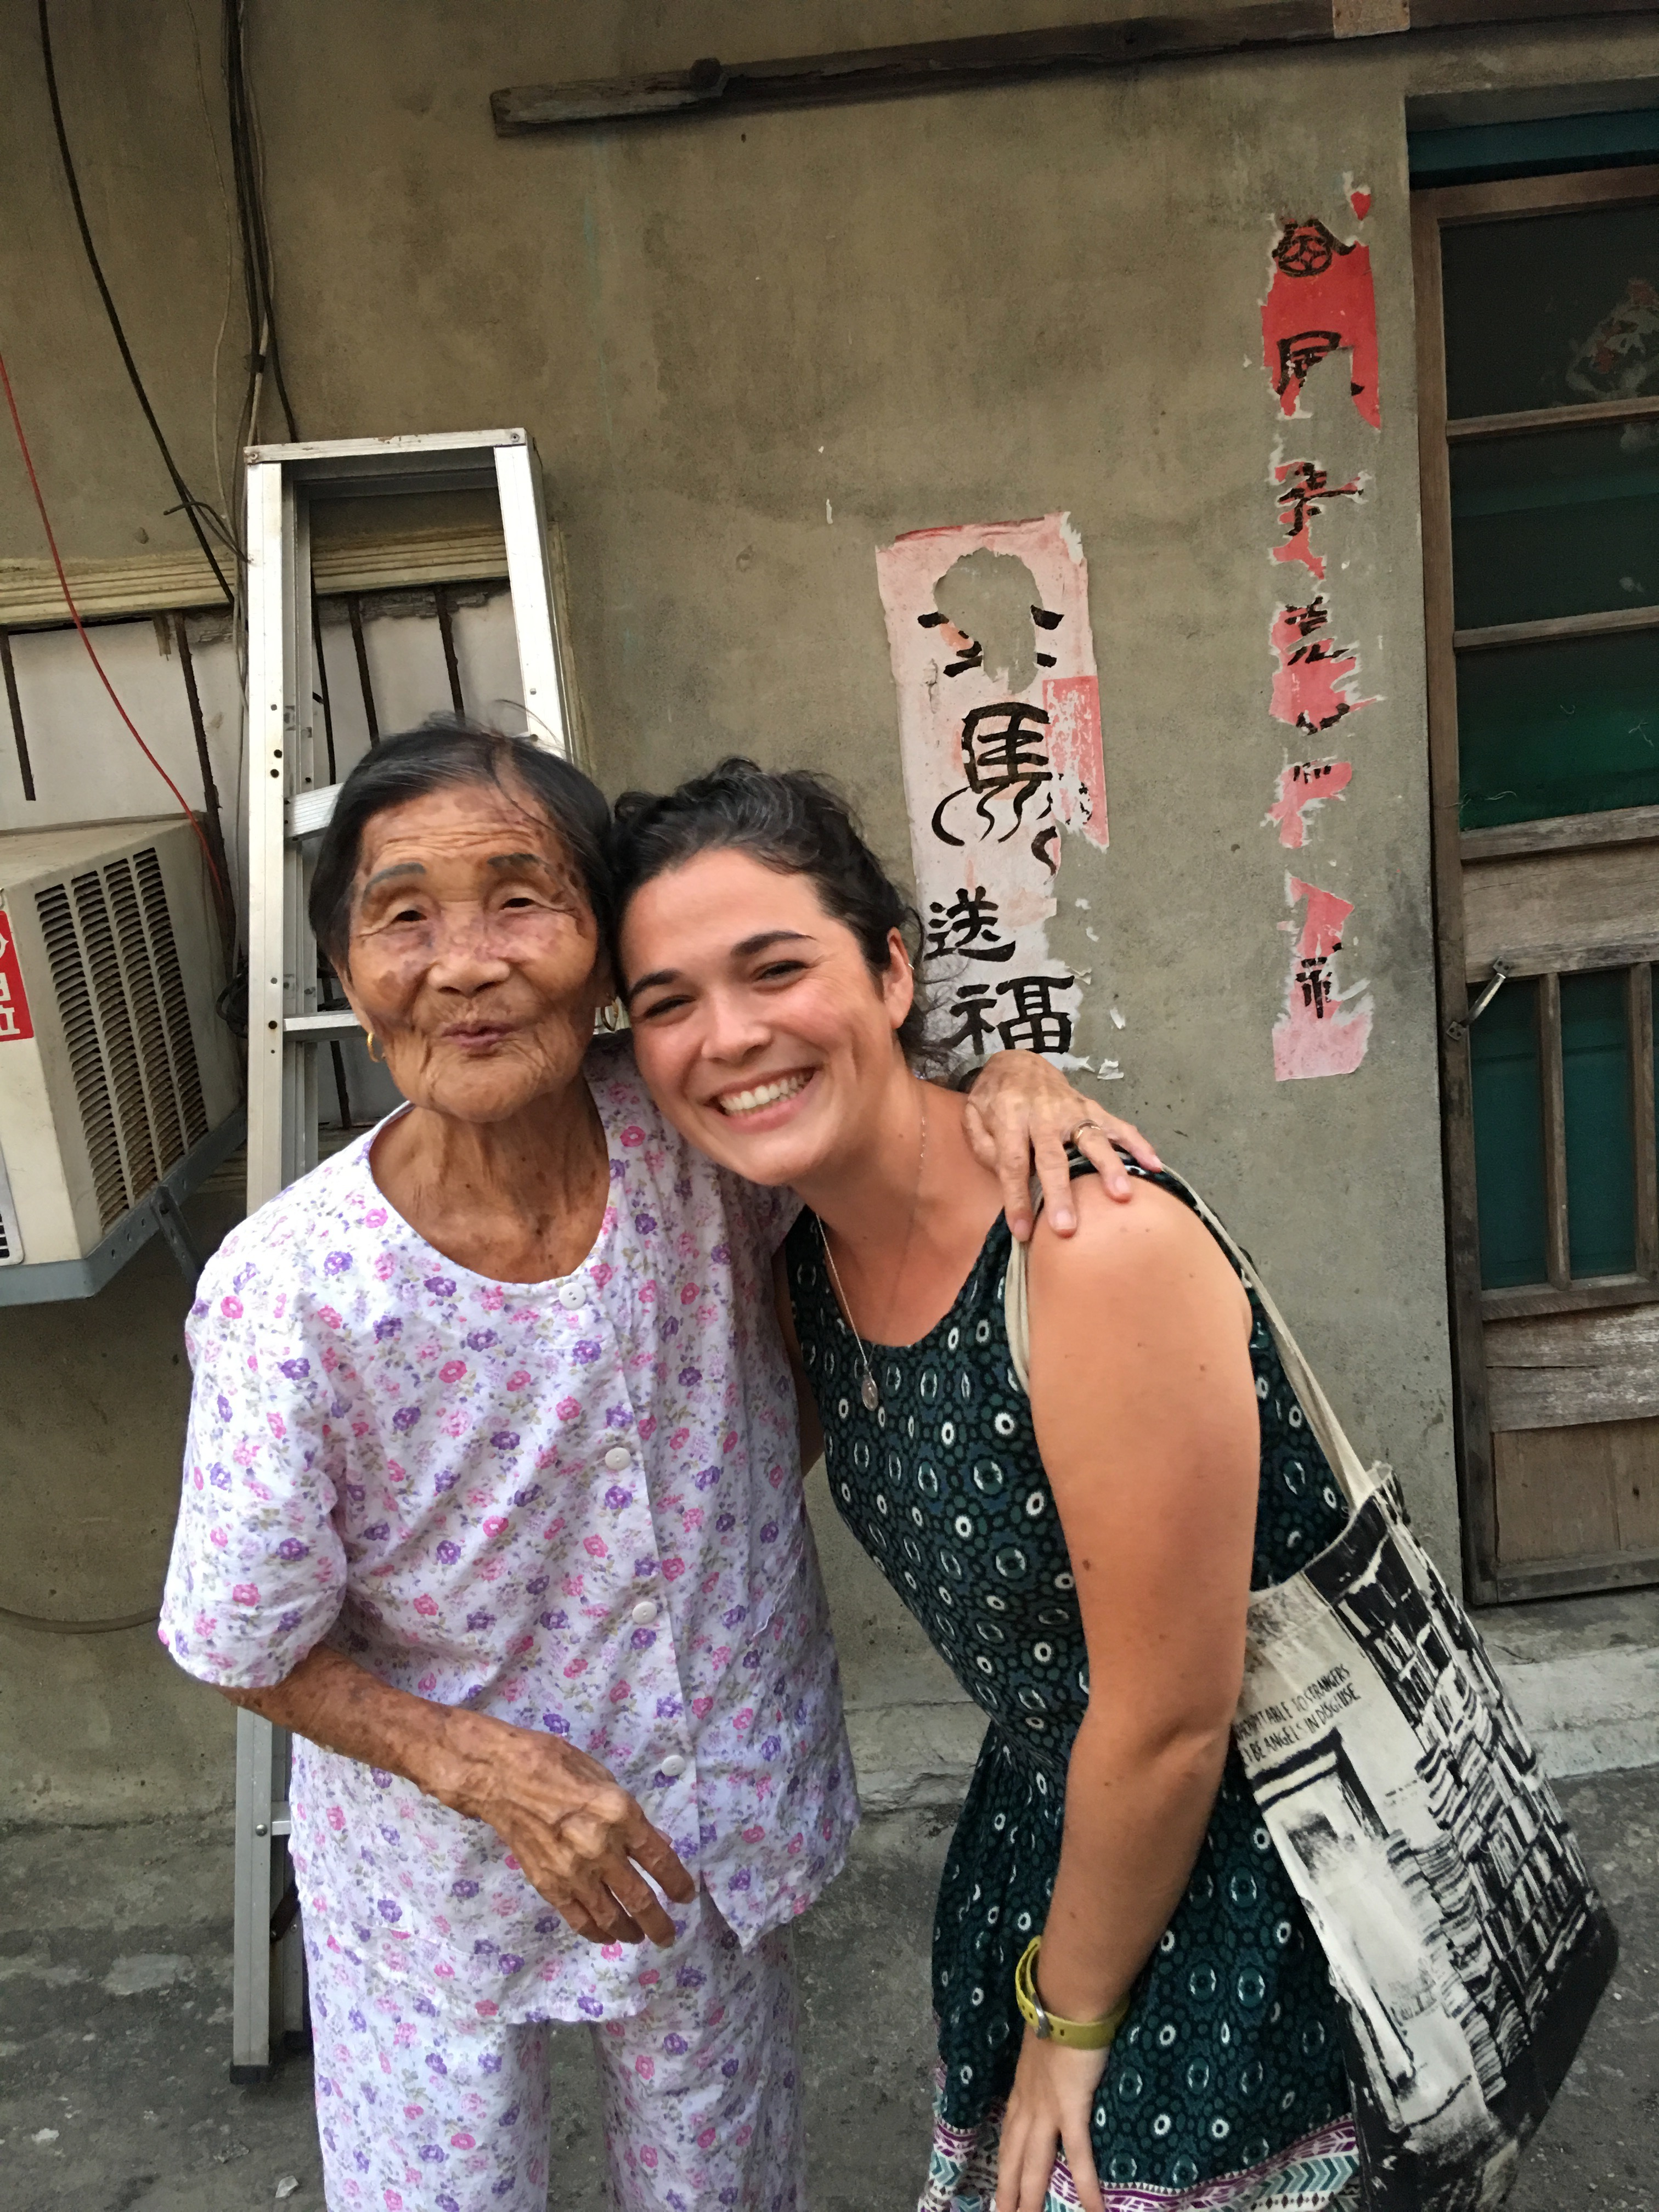 Reagan and her neighbor in Taiwan